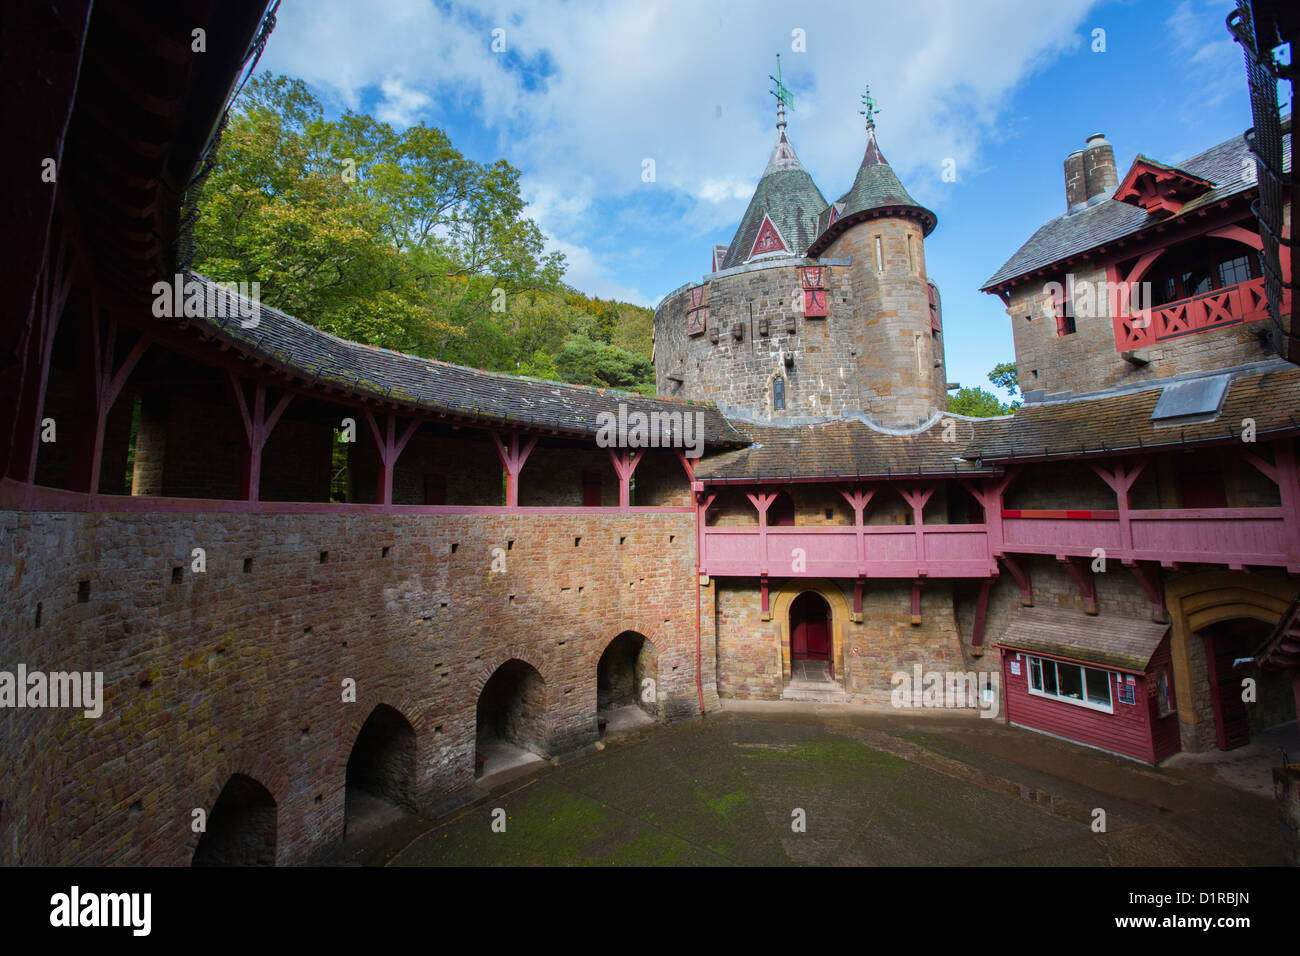 interior courtyard view of castell coch (red castle) near cardiff